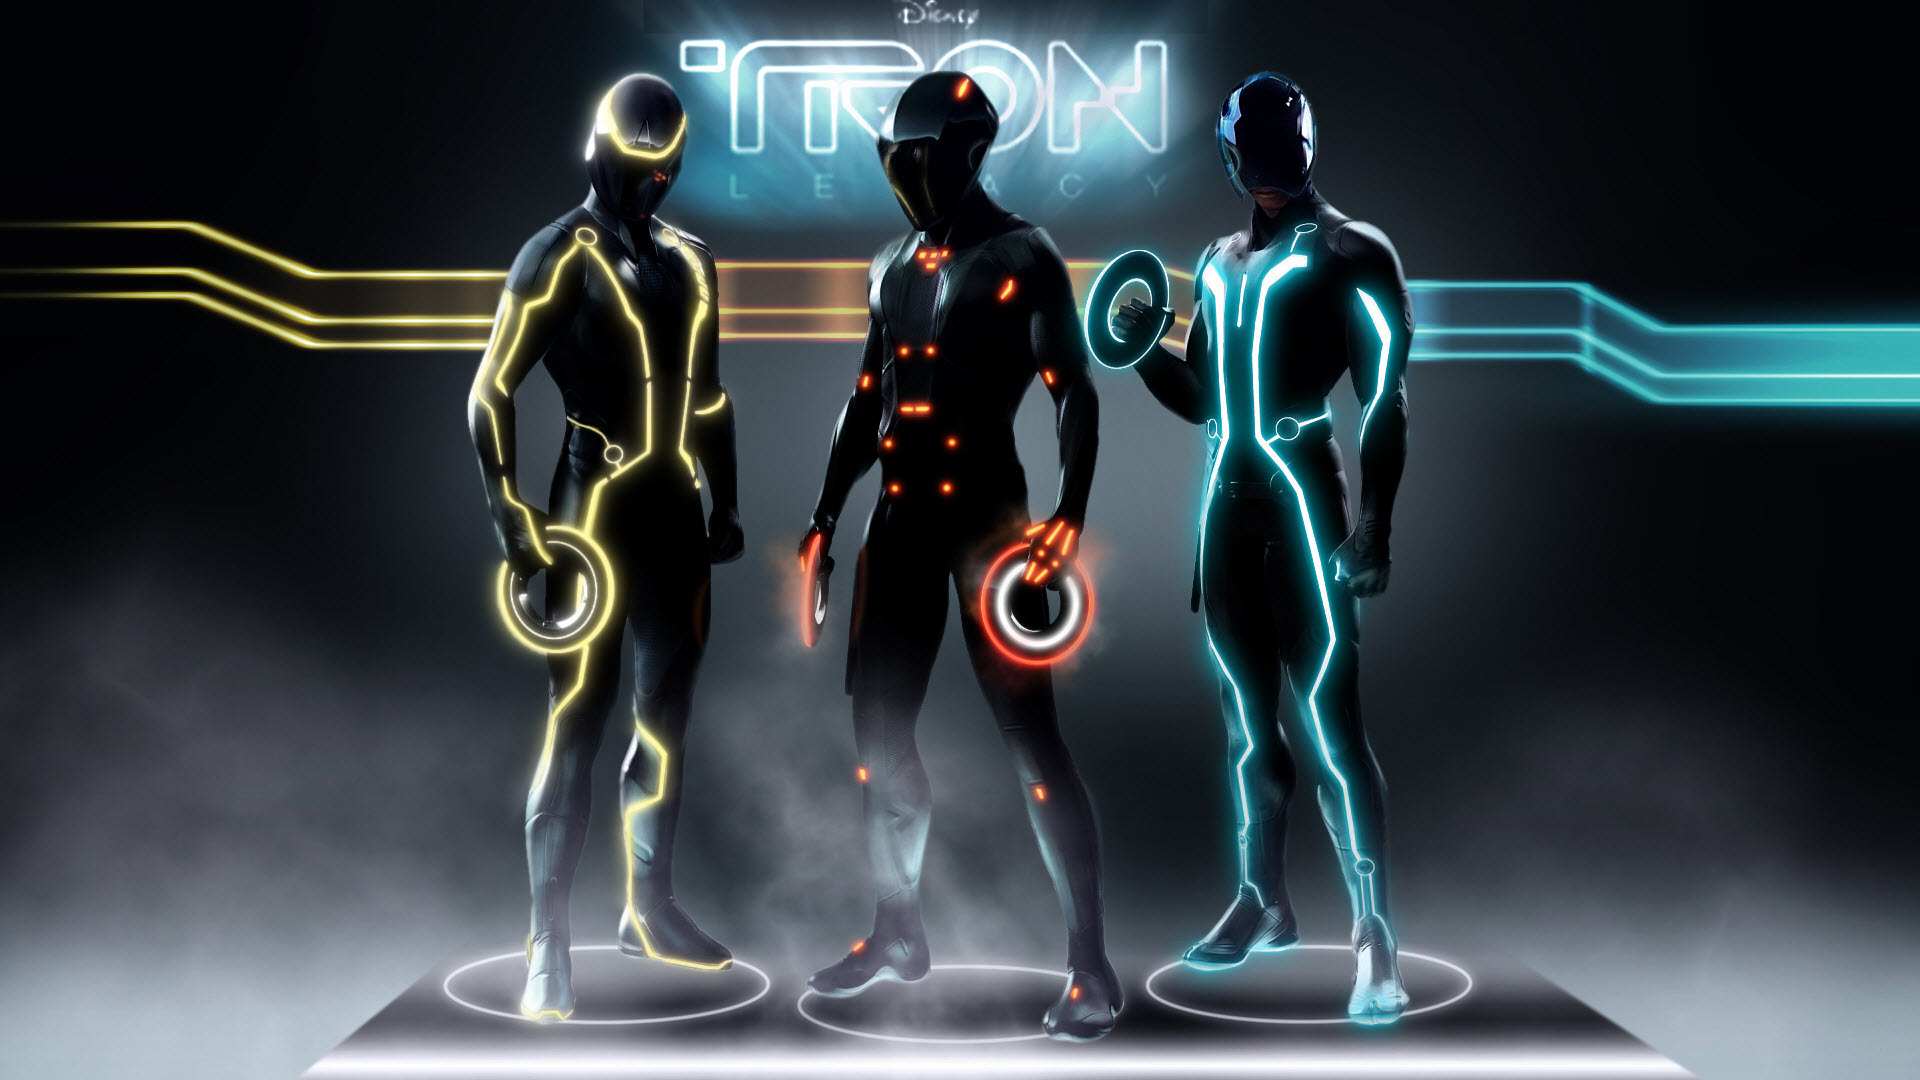 tron legacy full hd wallpaper and background image | 1920x1080 | id